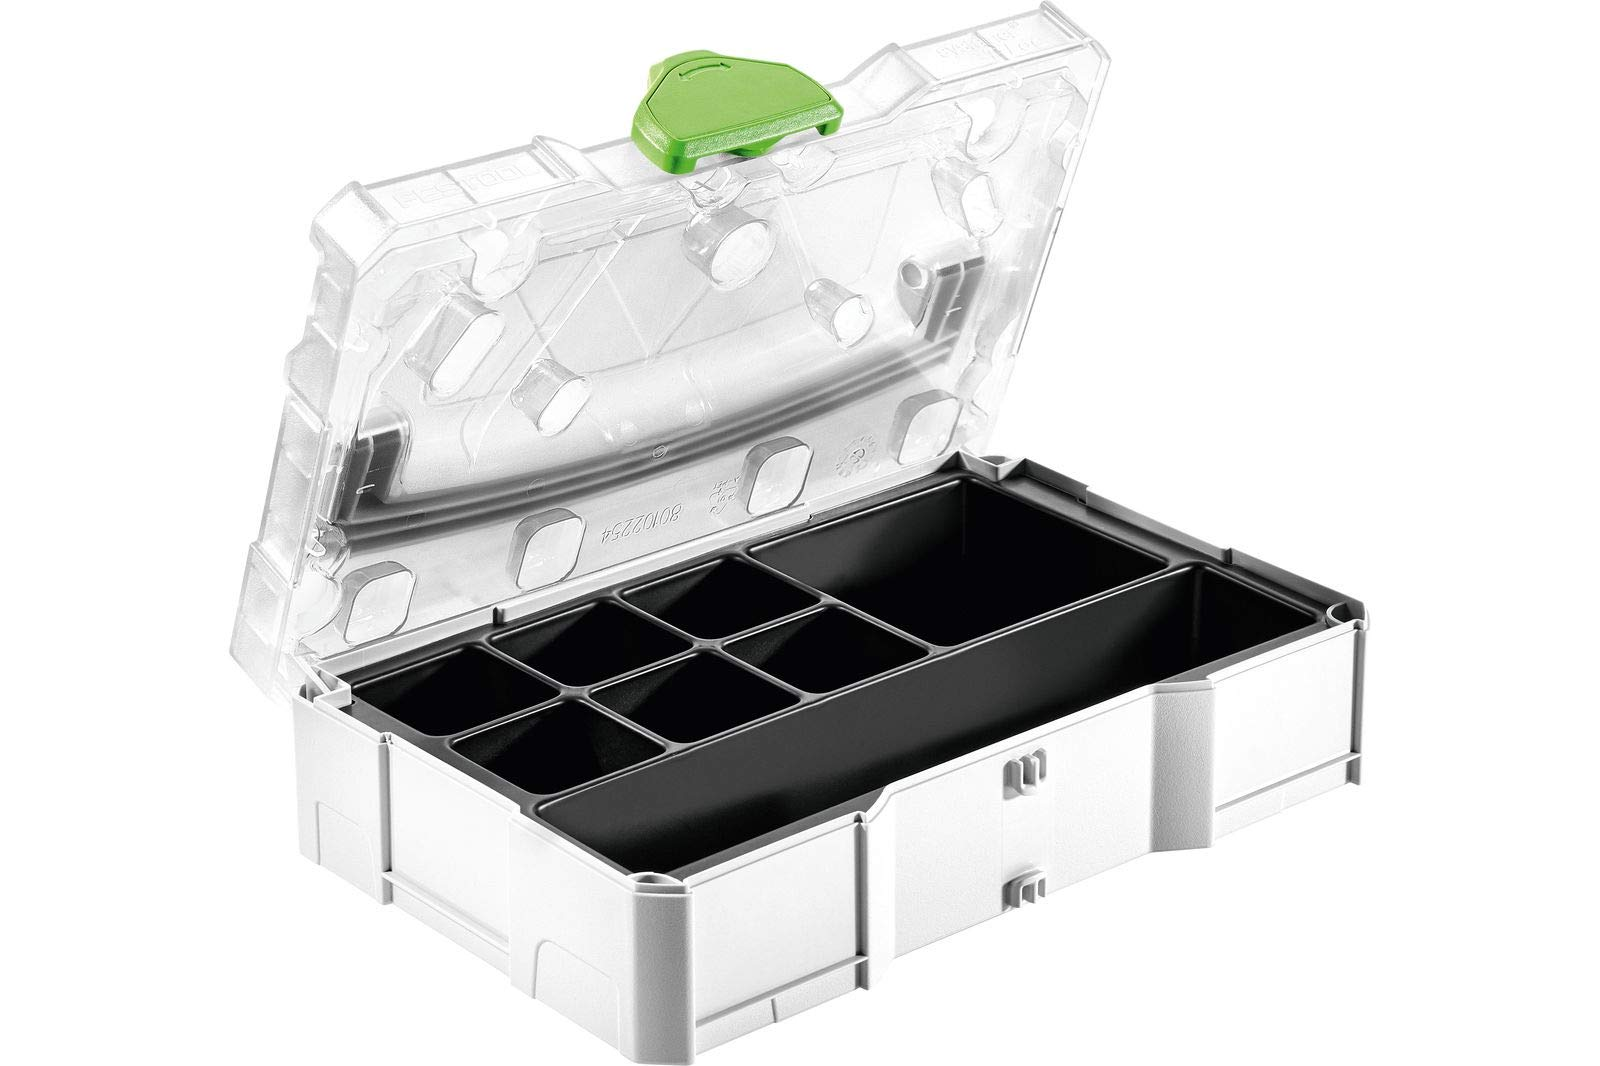 Festool 203821 Systainer SYS Mini with Insert